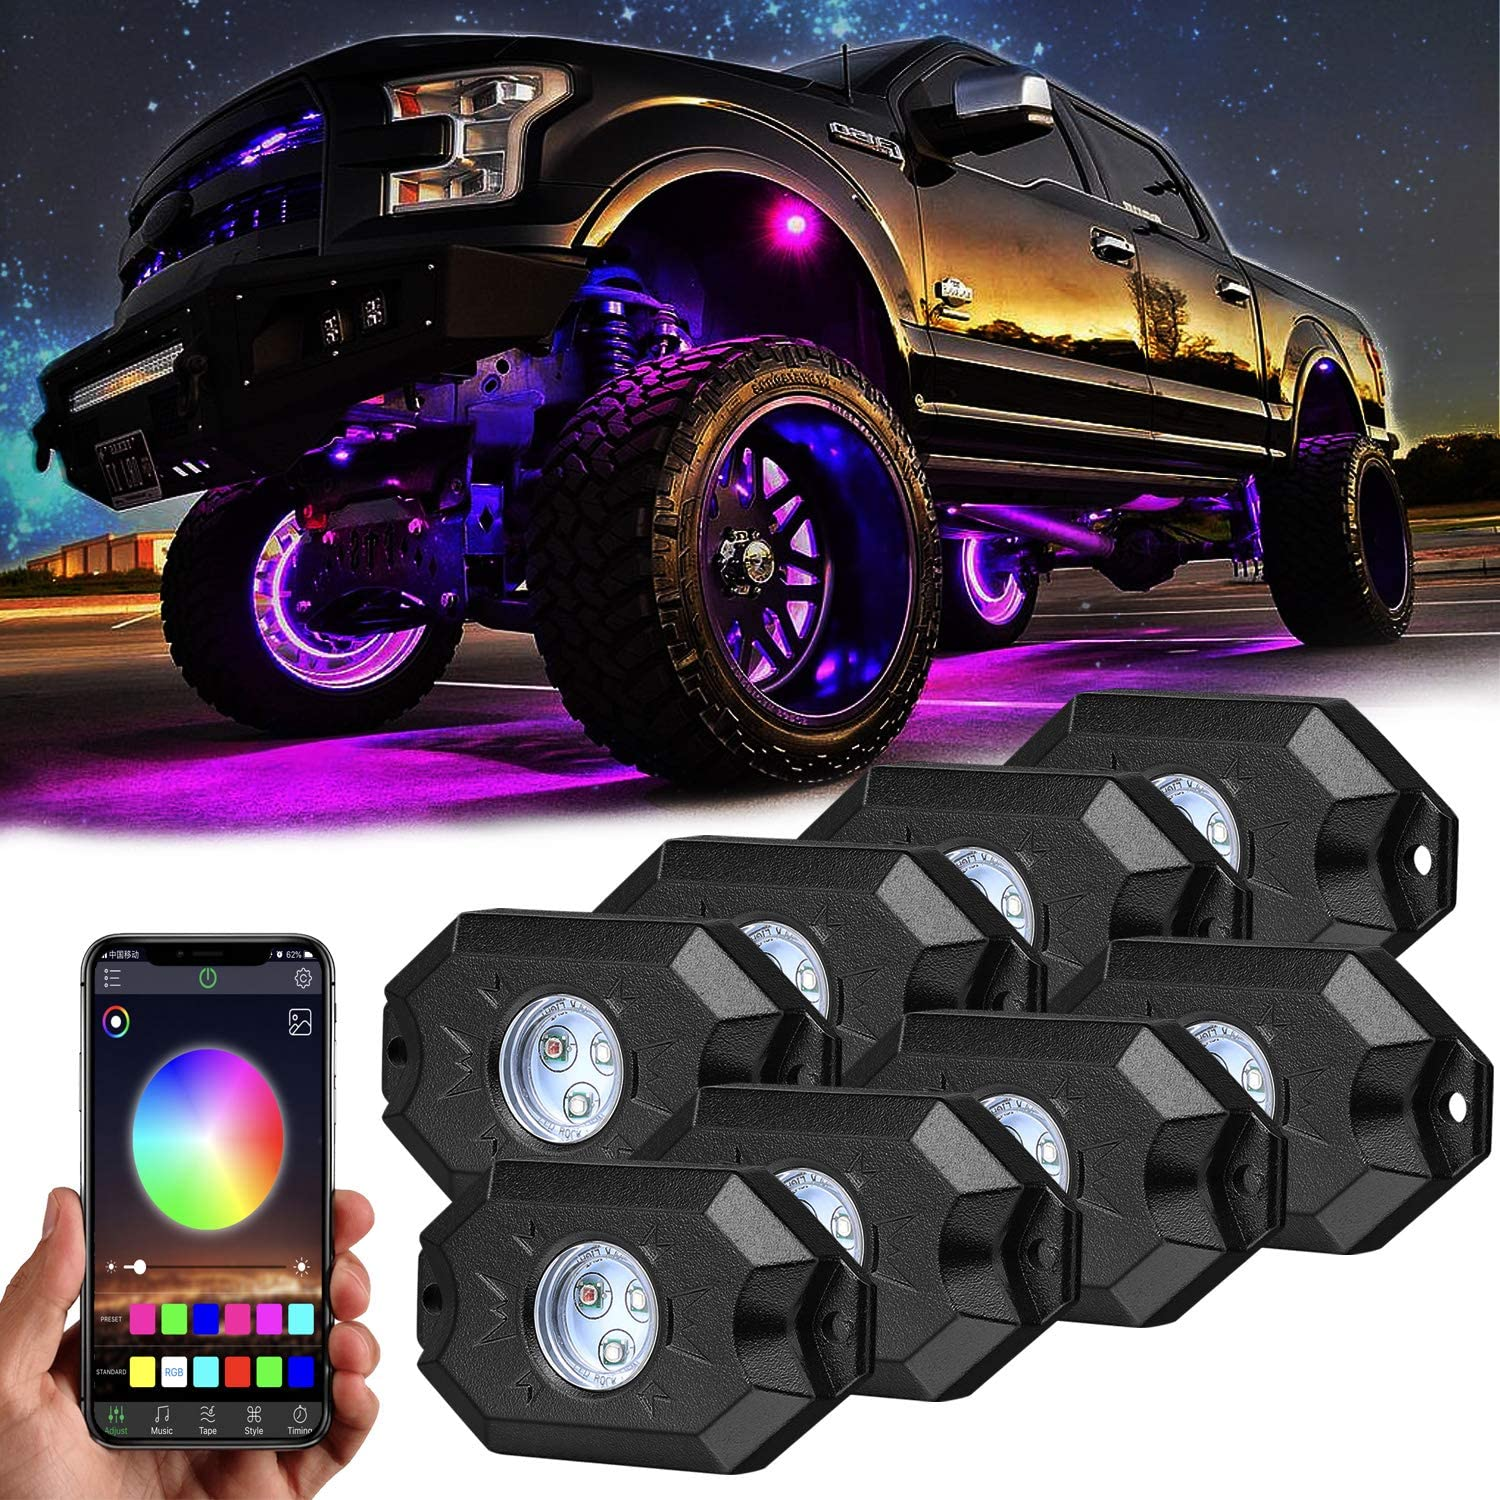 Rgb Rock Lights,8 Pods Underglow Lights with App Control,Timing,Music Mode,Flashing Multicolor 4 Wheels Neon Lights for Truck Suv Atv Off Road: Automotive